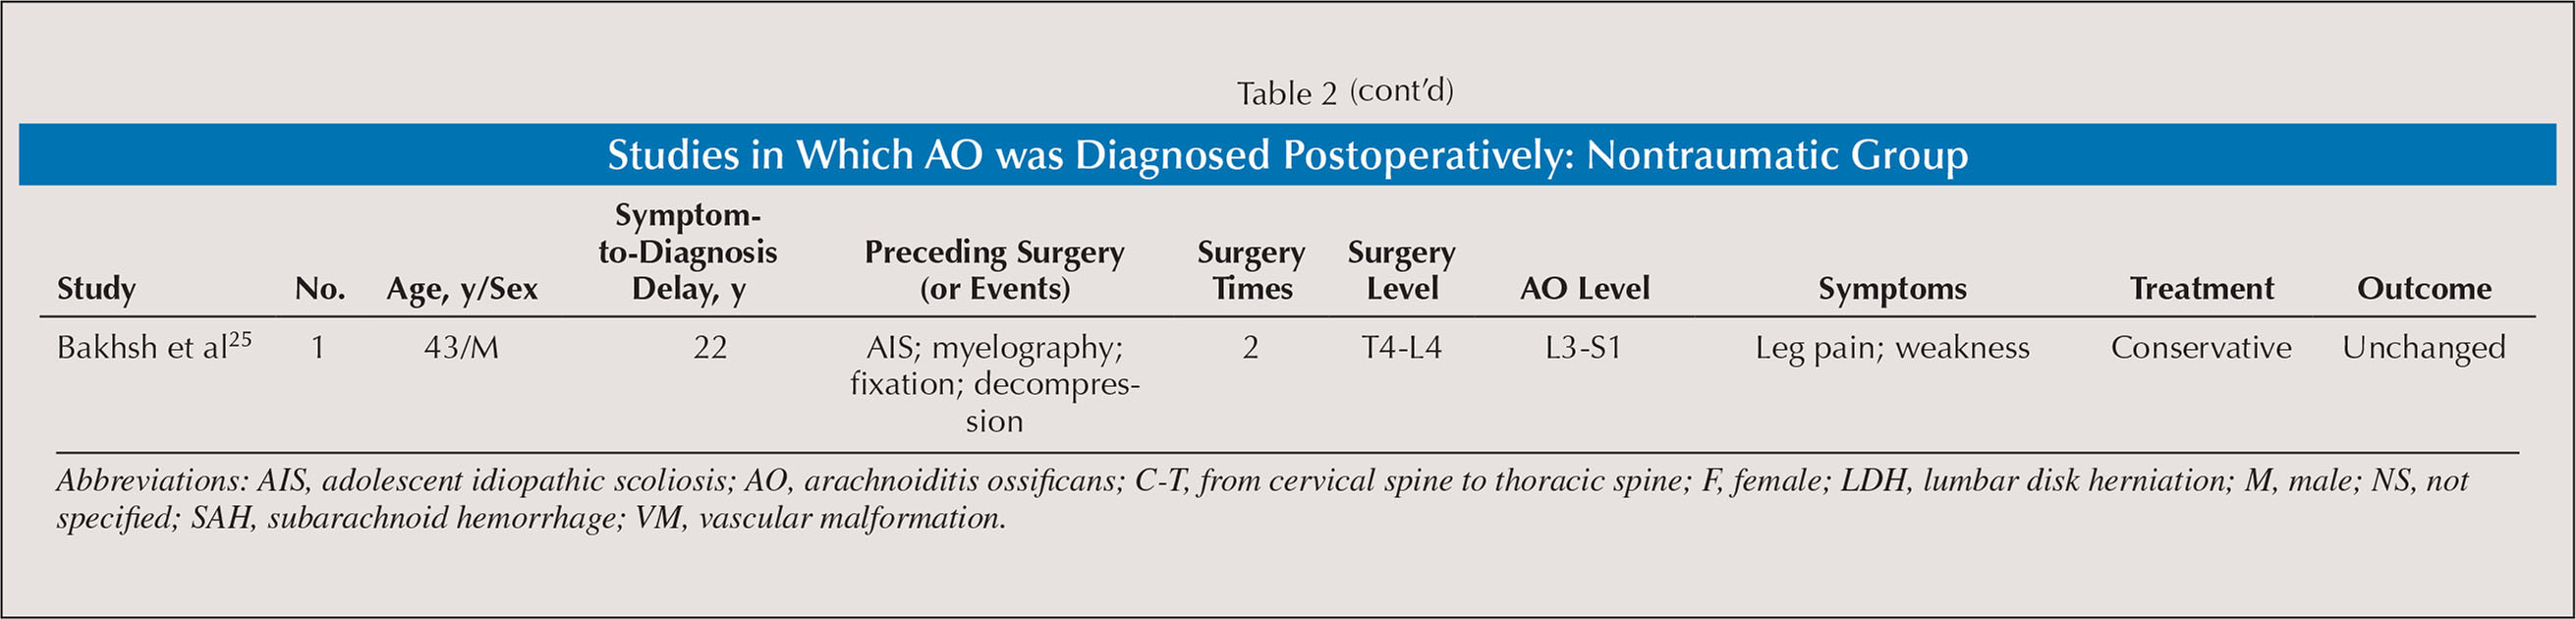 Arachnoiditis Ossificans After Spinal Surgery